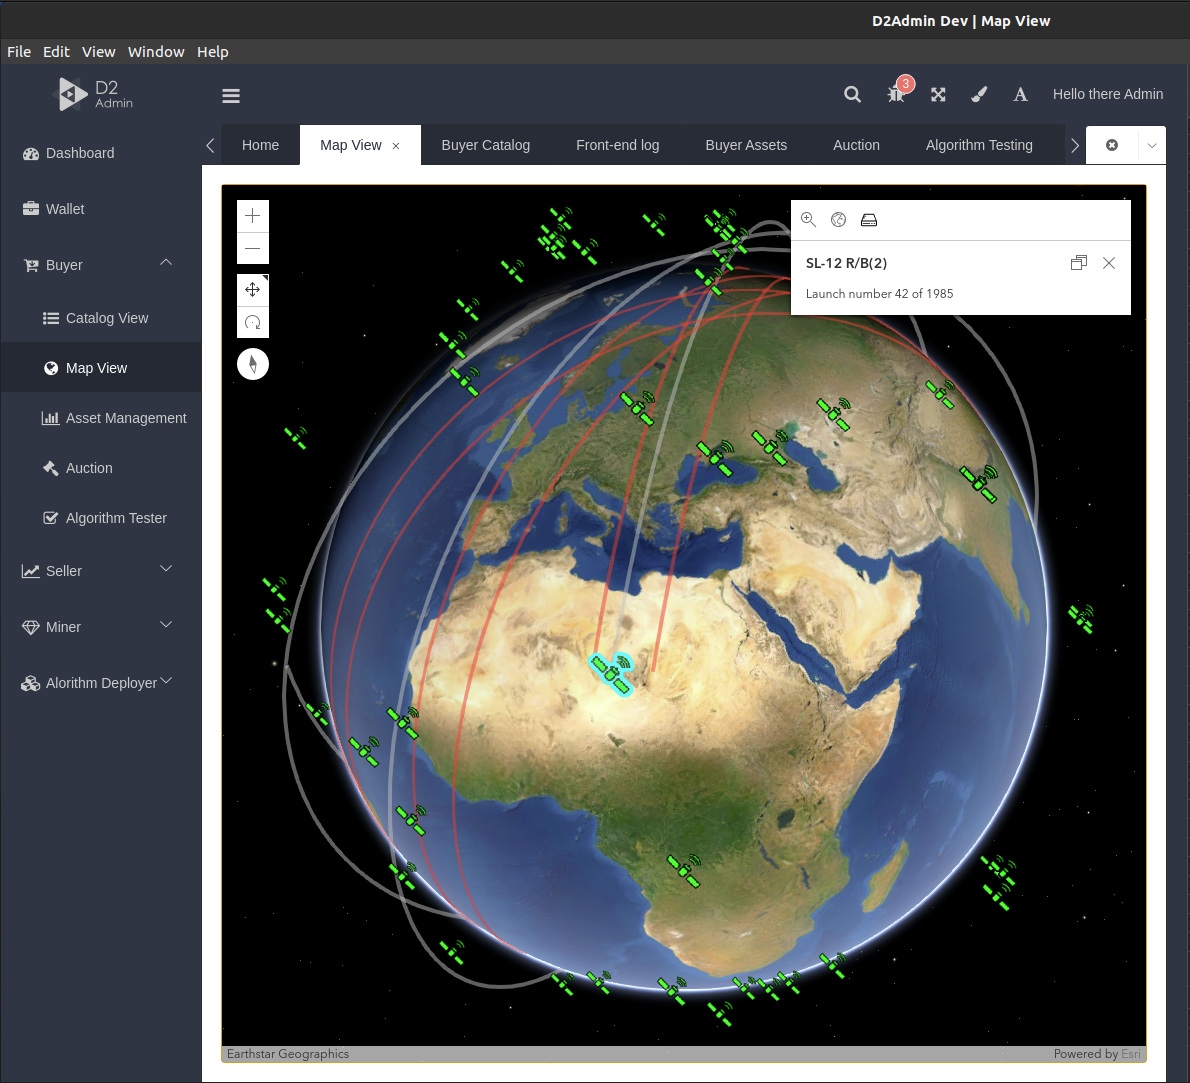 Screenshot of D2Admin Dev / Map View focusing on Earth and launch numbers